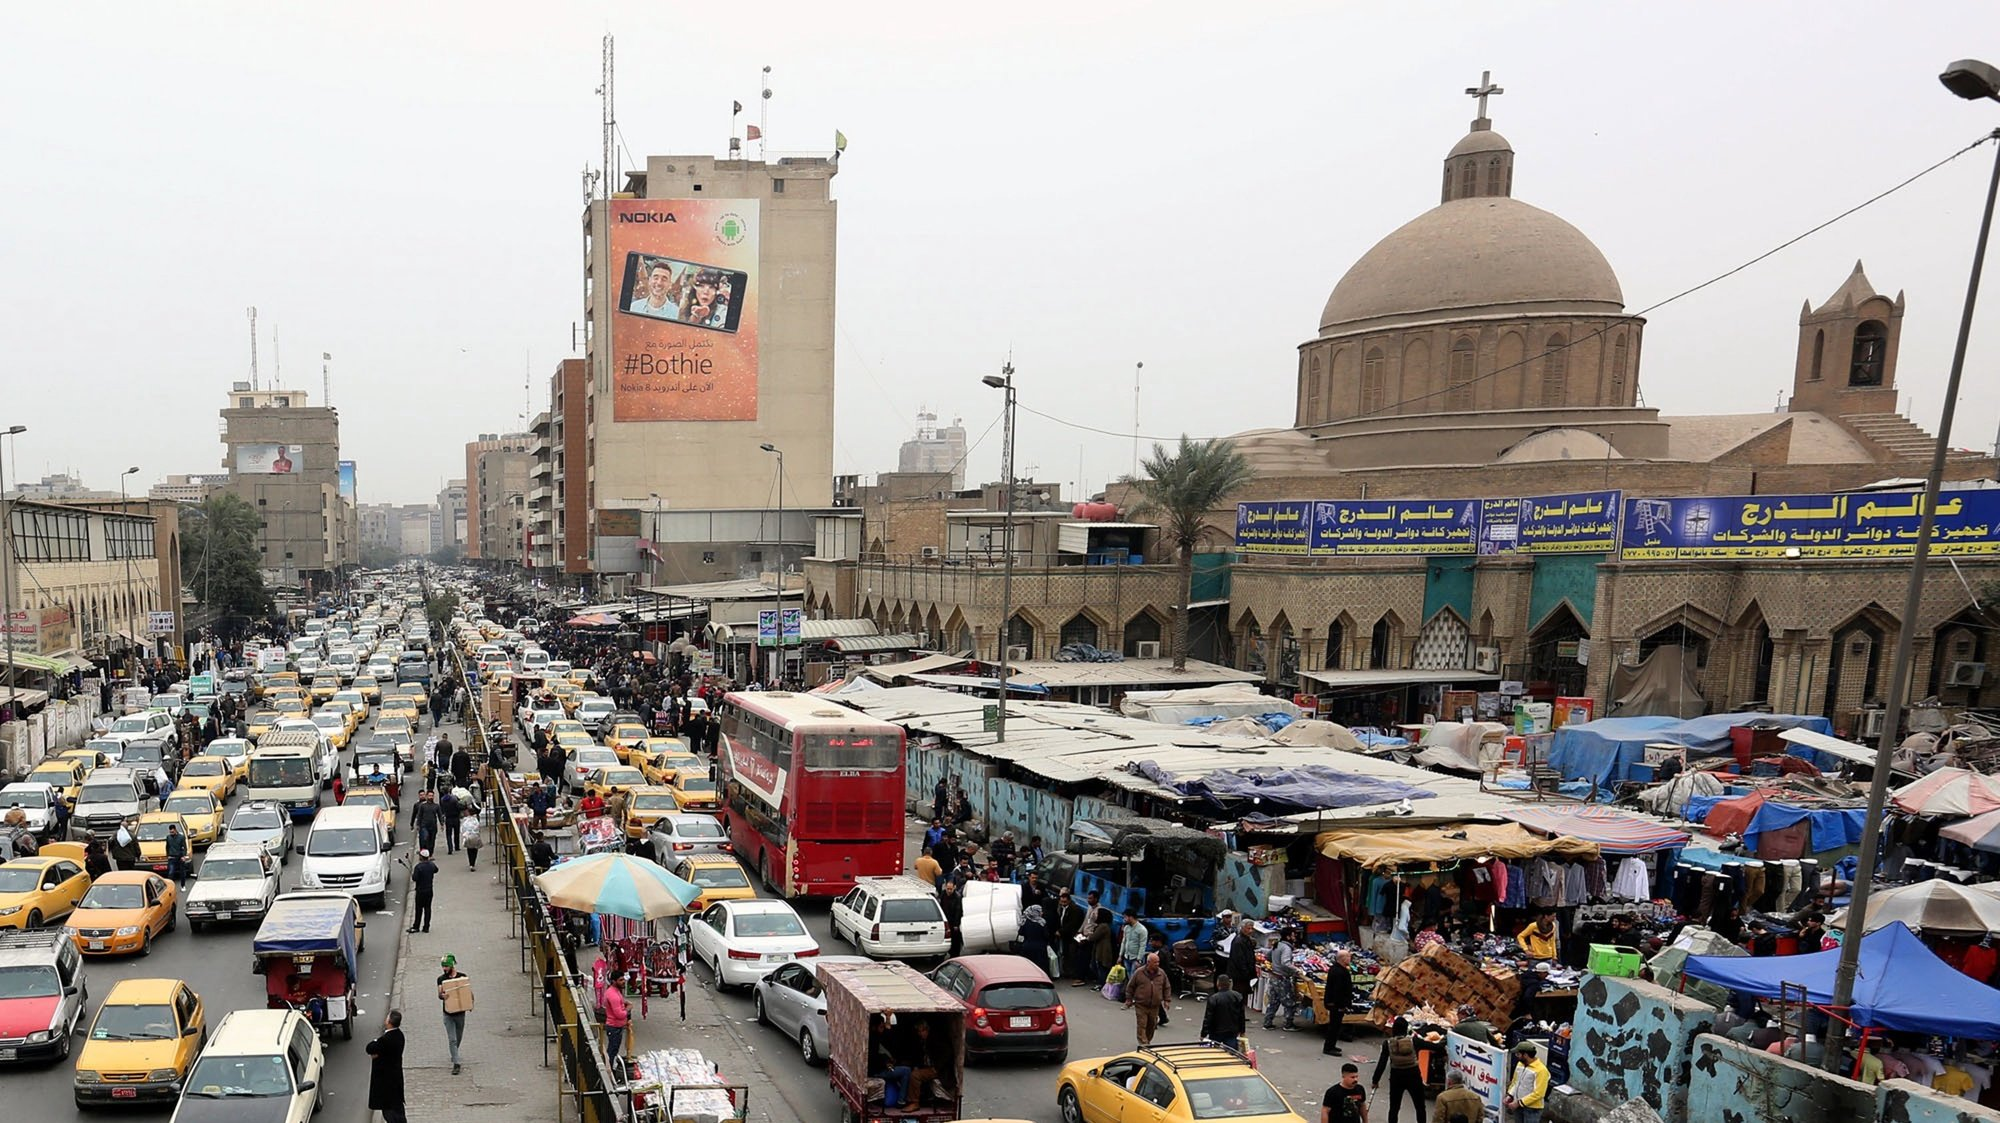 epa06521771 Vehicles drive next to Shorja market at central Baghdad, Iraq, 13 February 2018. An international donor conference was held in Kuwait on 12 February to raise funds for Iraq's reconstruction following its three-year war against Islamic State (IS), as the Iraqi government said it would need an estimated 88.2 billion US dollars for reconstruction.  EPA/ALI ABBAS